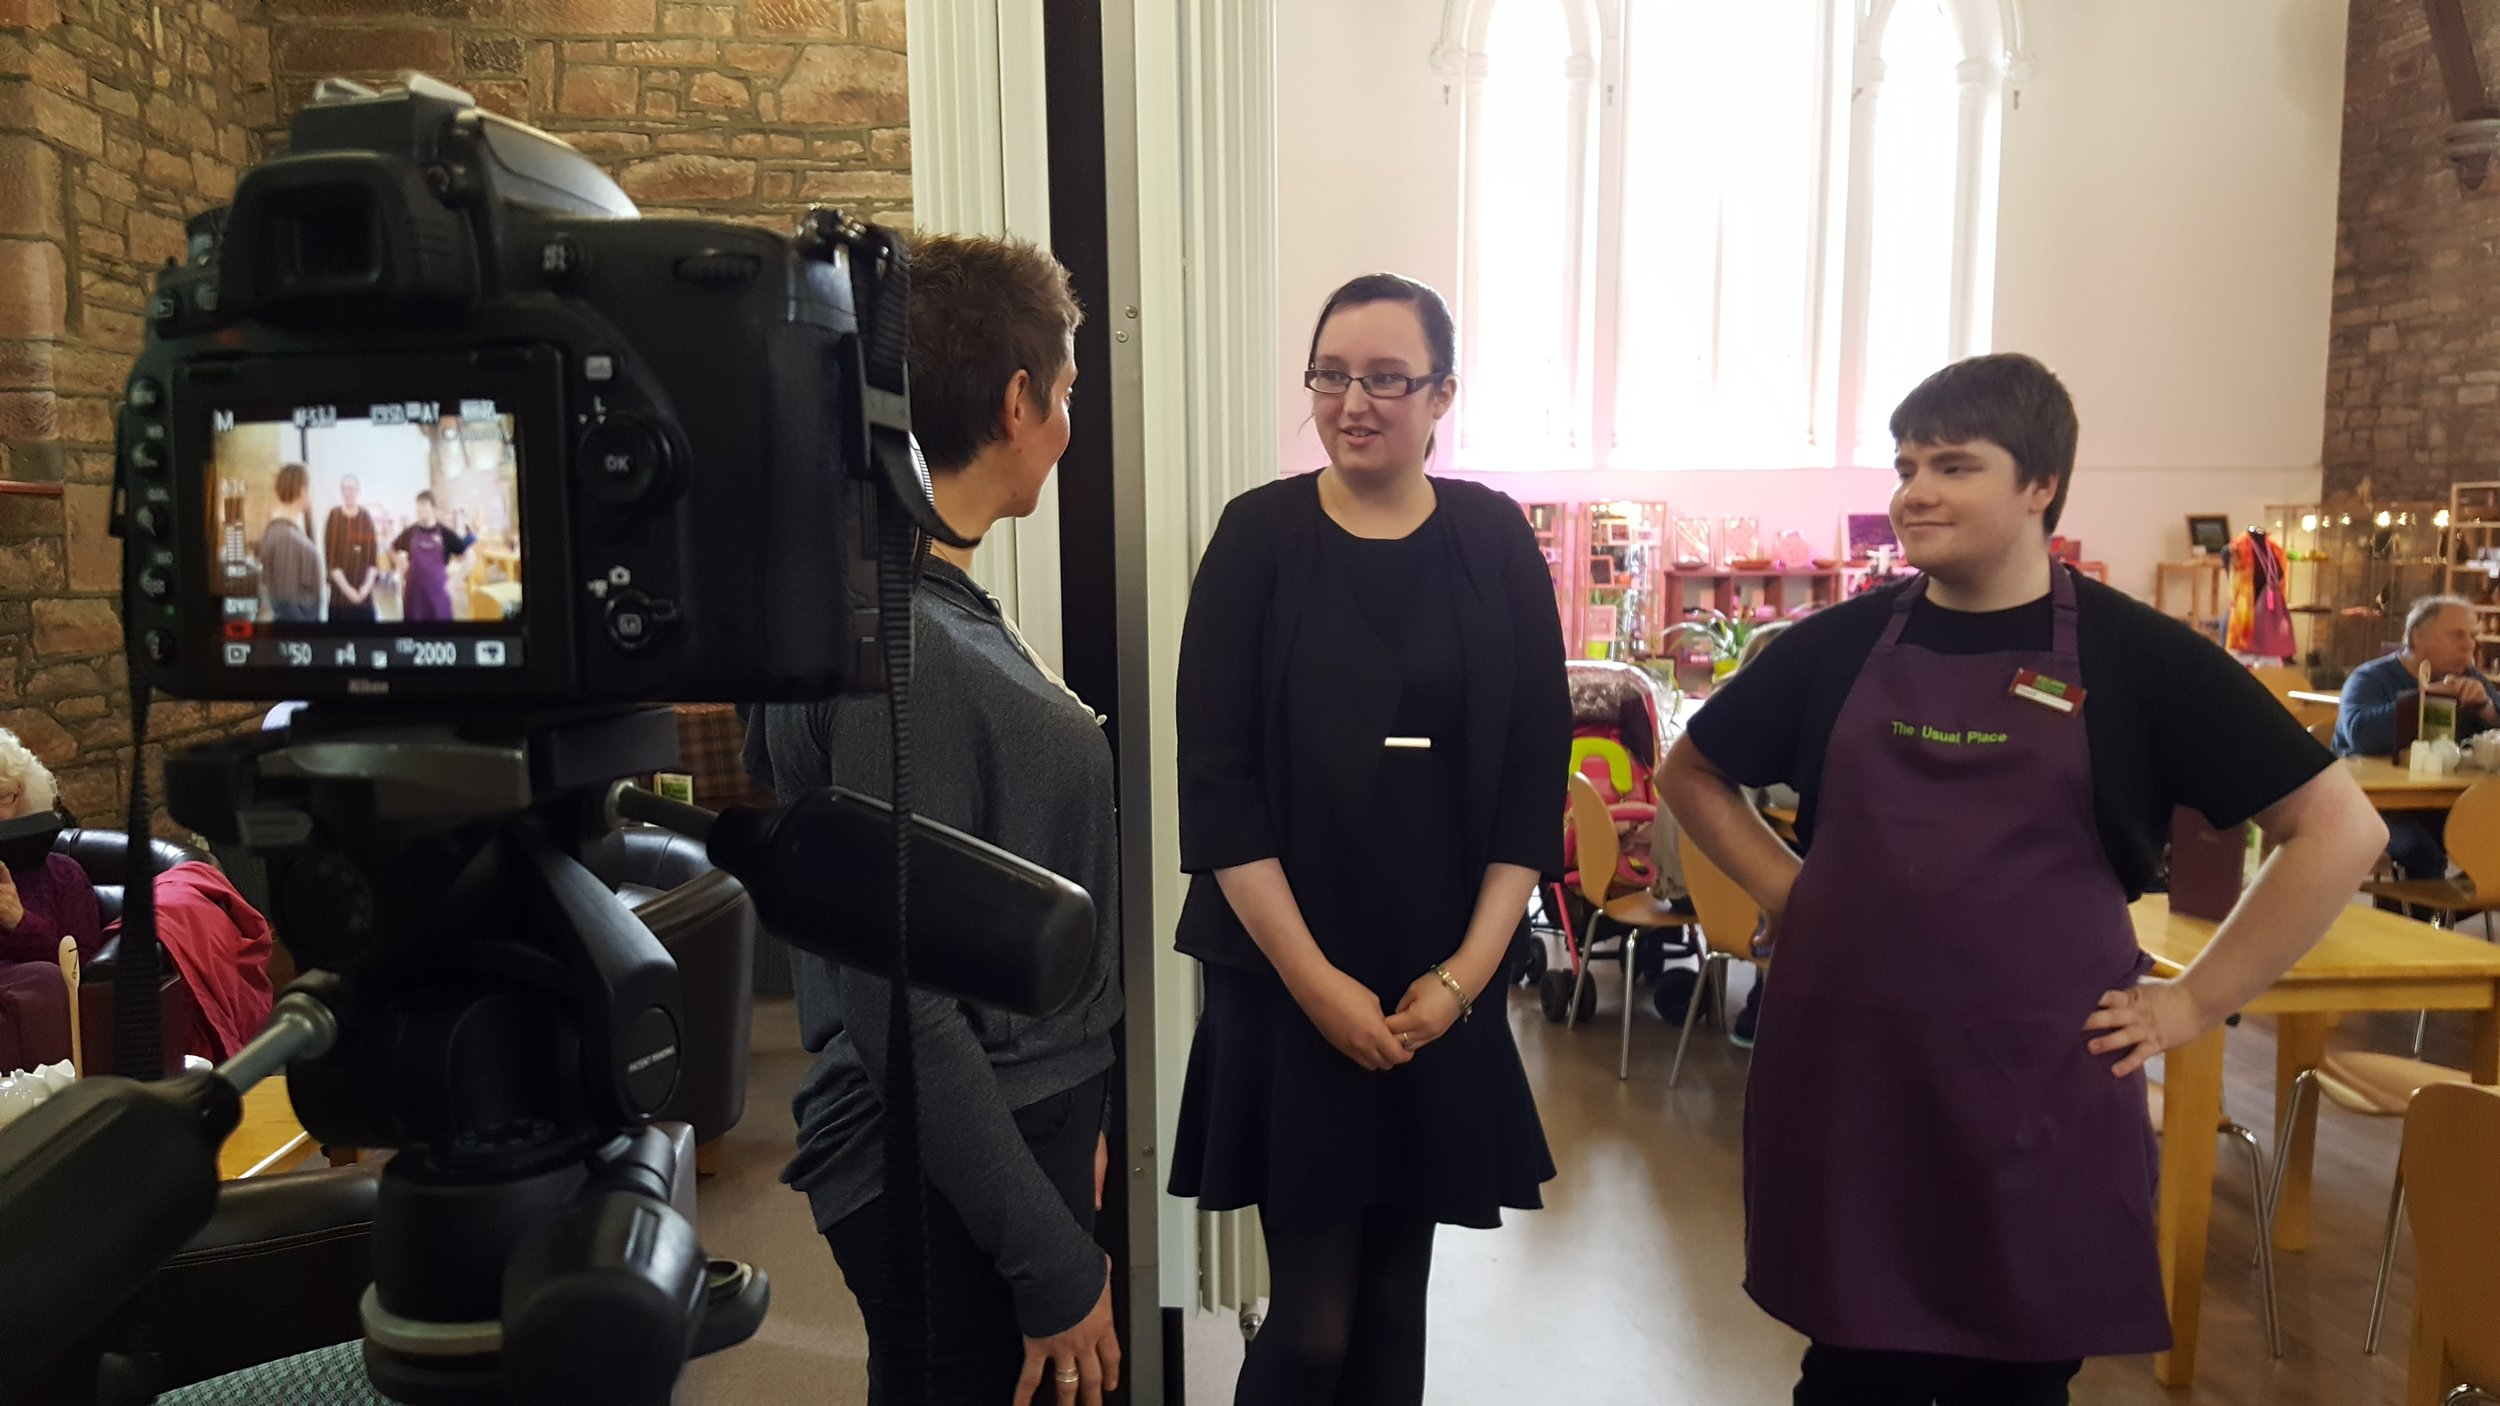 Filming at Usual Place in Dumfries, what a great day we spent with storyteller Wendy Woolfson, CEO Amy and serivce user David